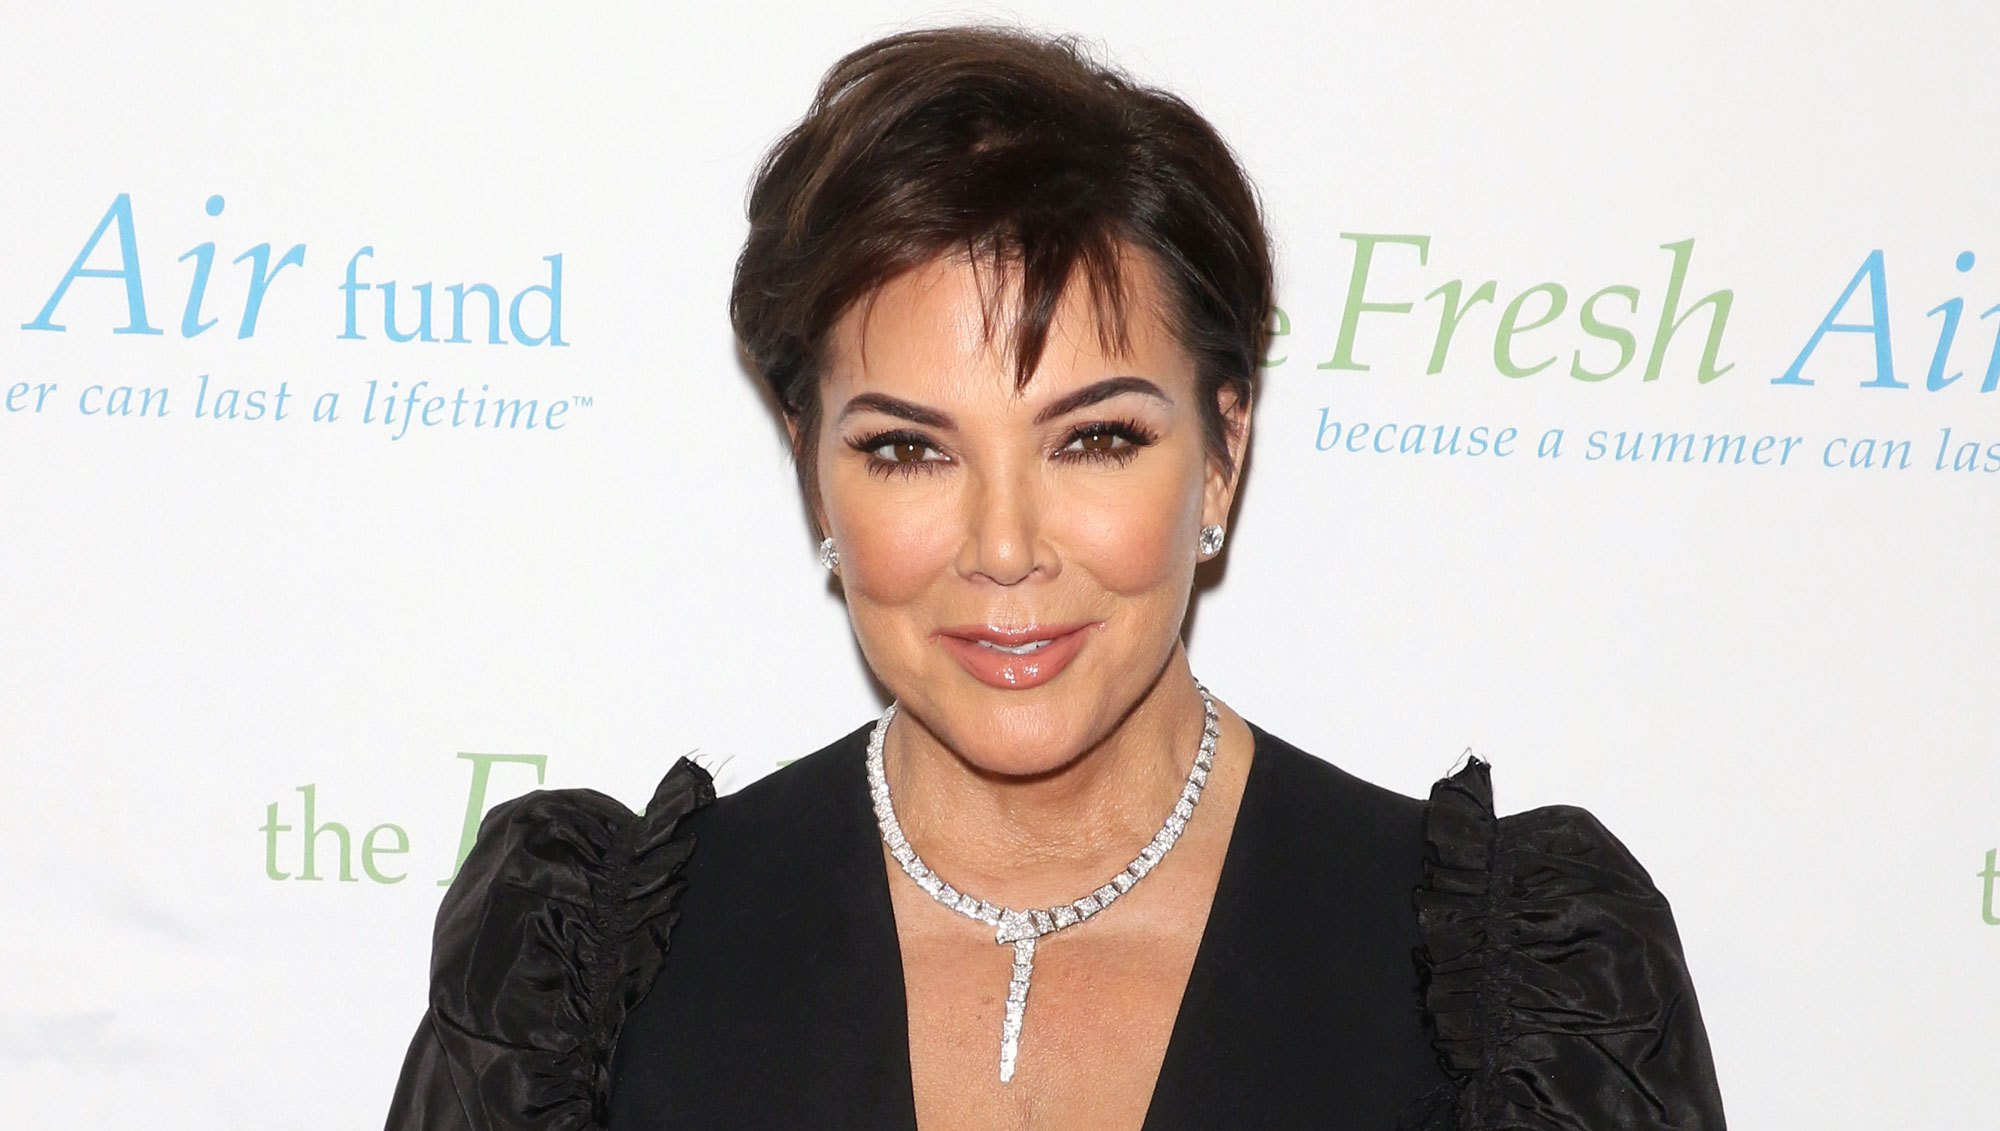 Kris Jenner Explains the Inspiration Behind Grandson Psalm's Name